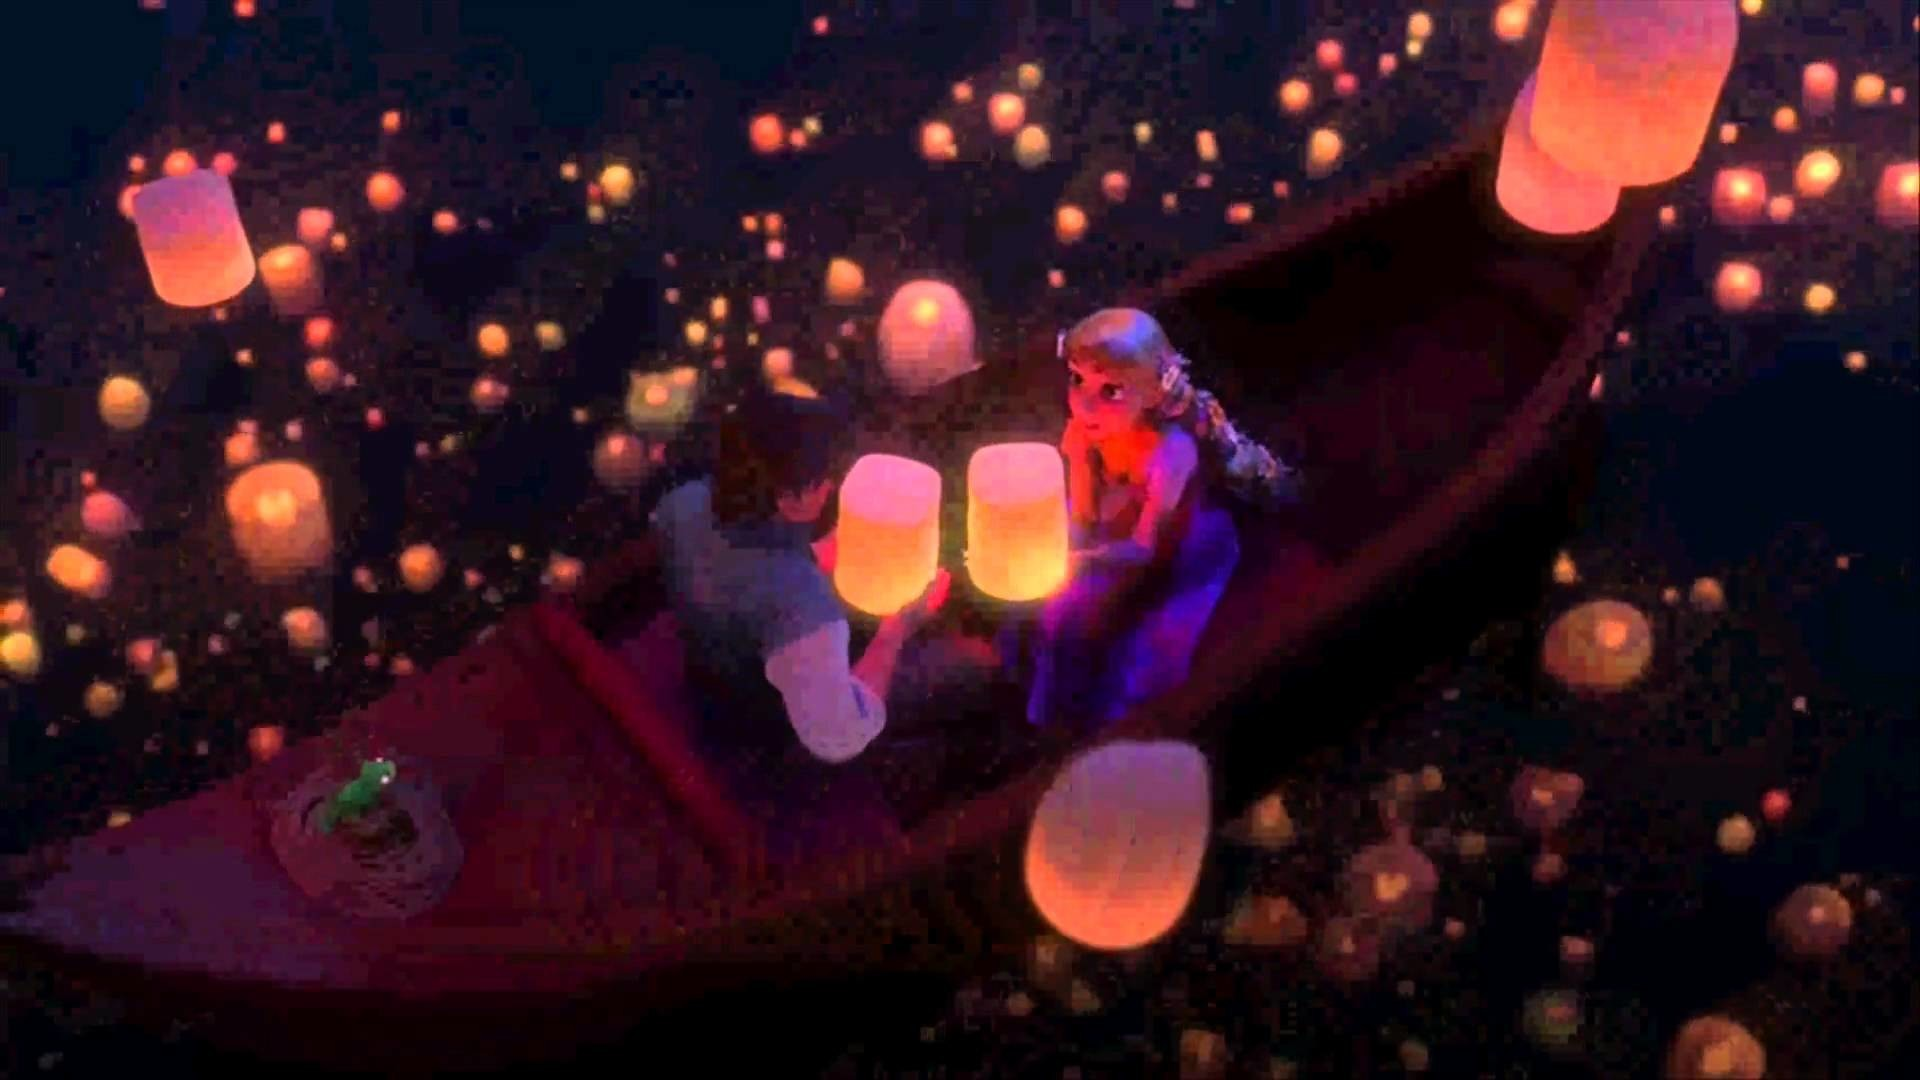 2560x1600 Tangled wallpaper